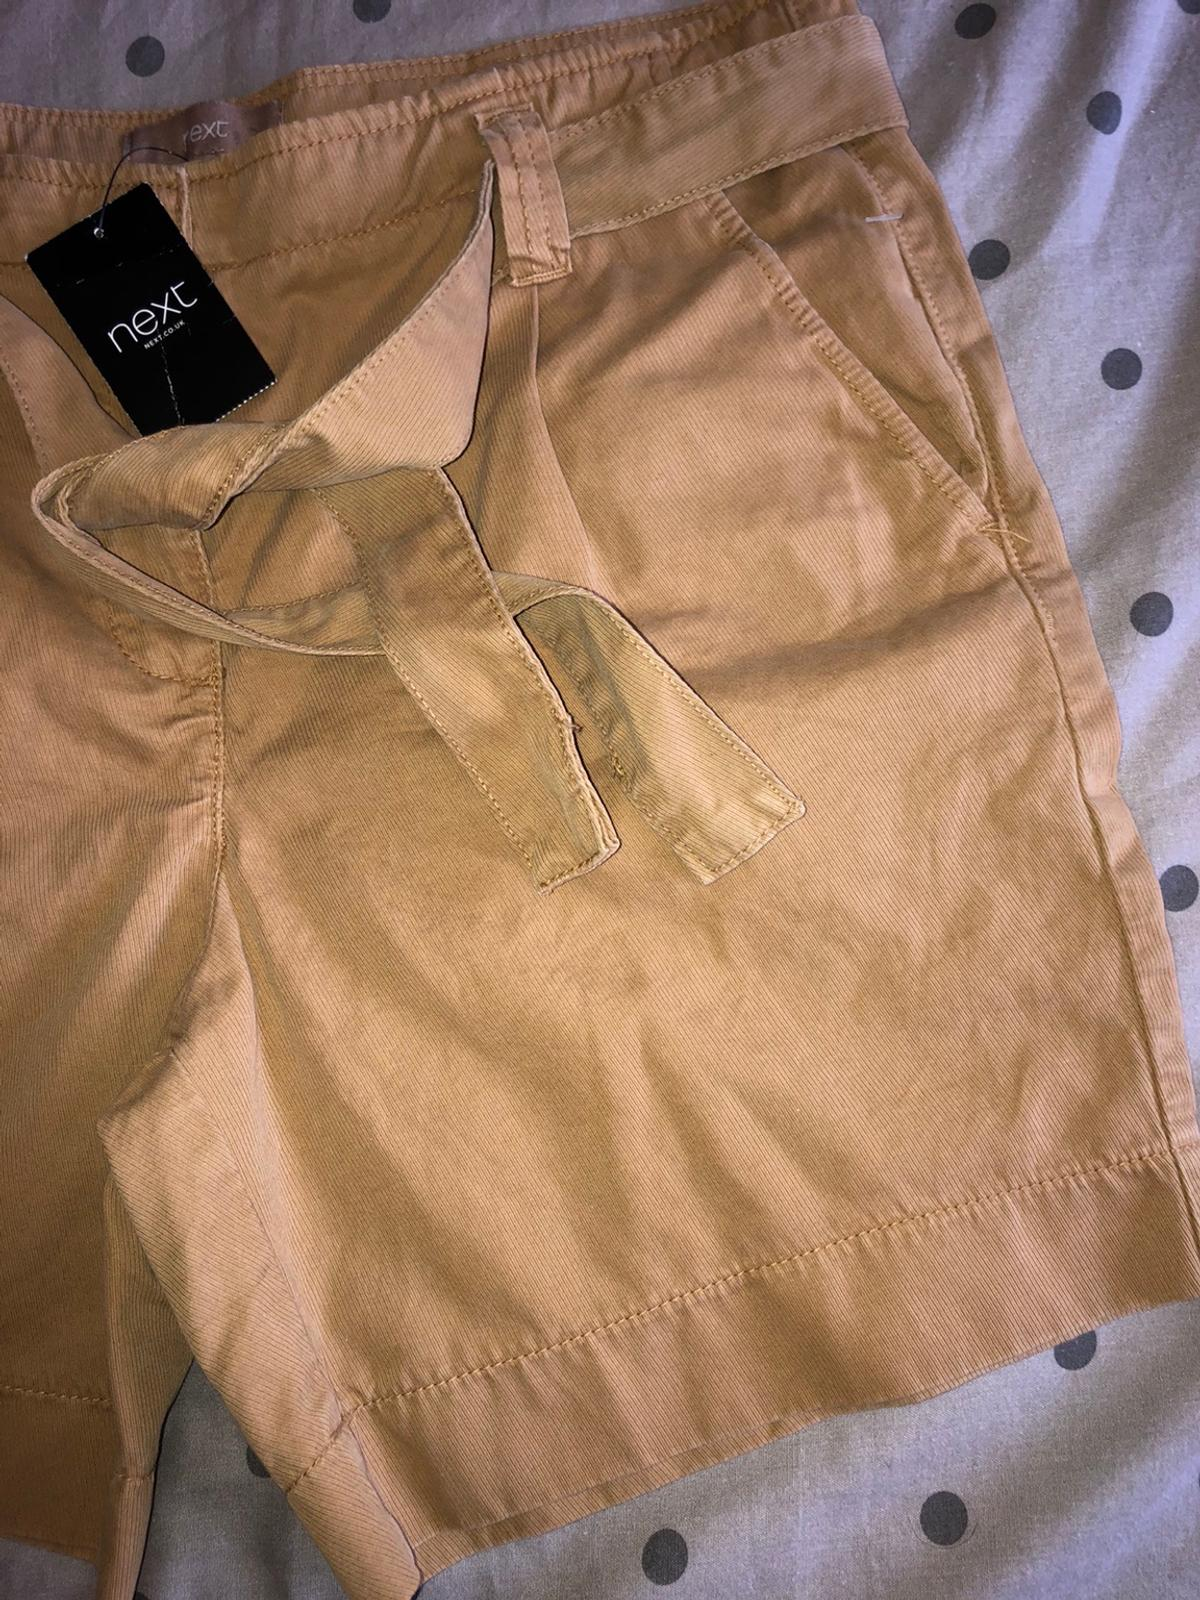 Brand New With Tags Ladies Shorts Next Size 12 Collection from Sedgley DY3 3TW Postage £3.50